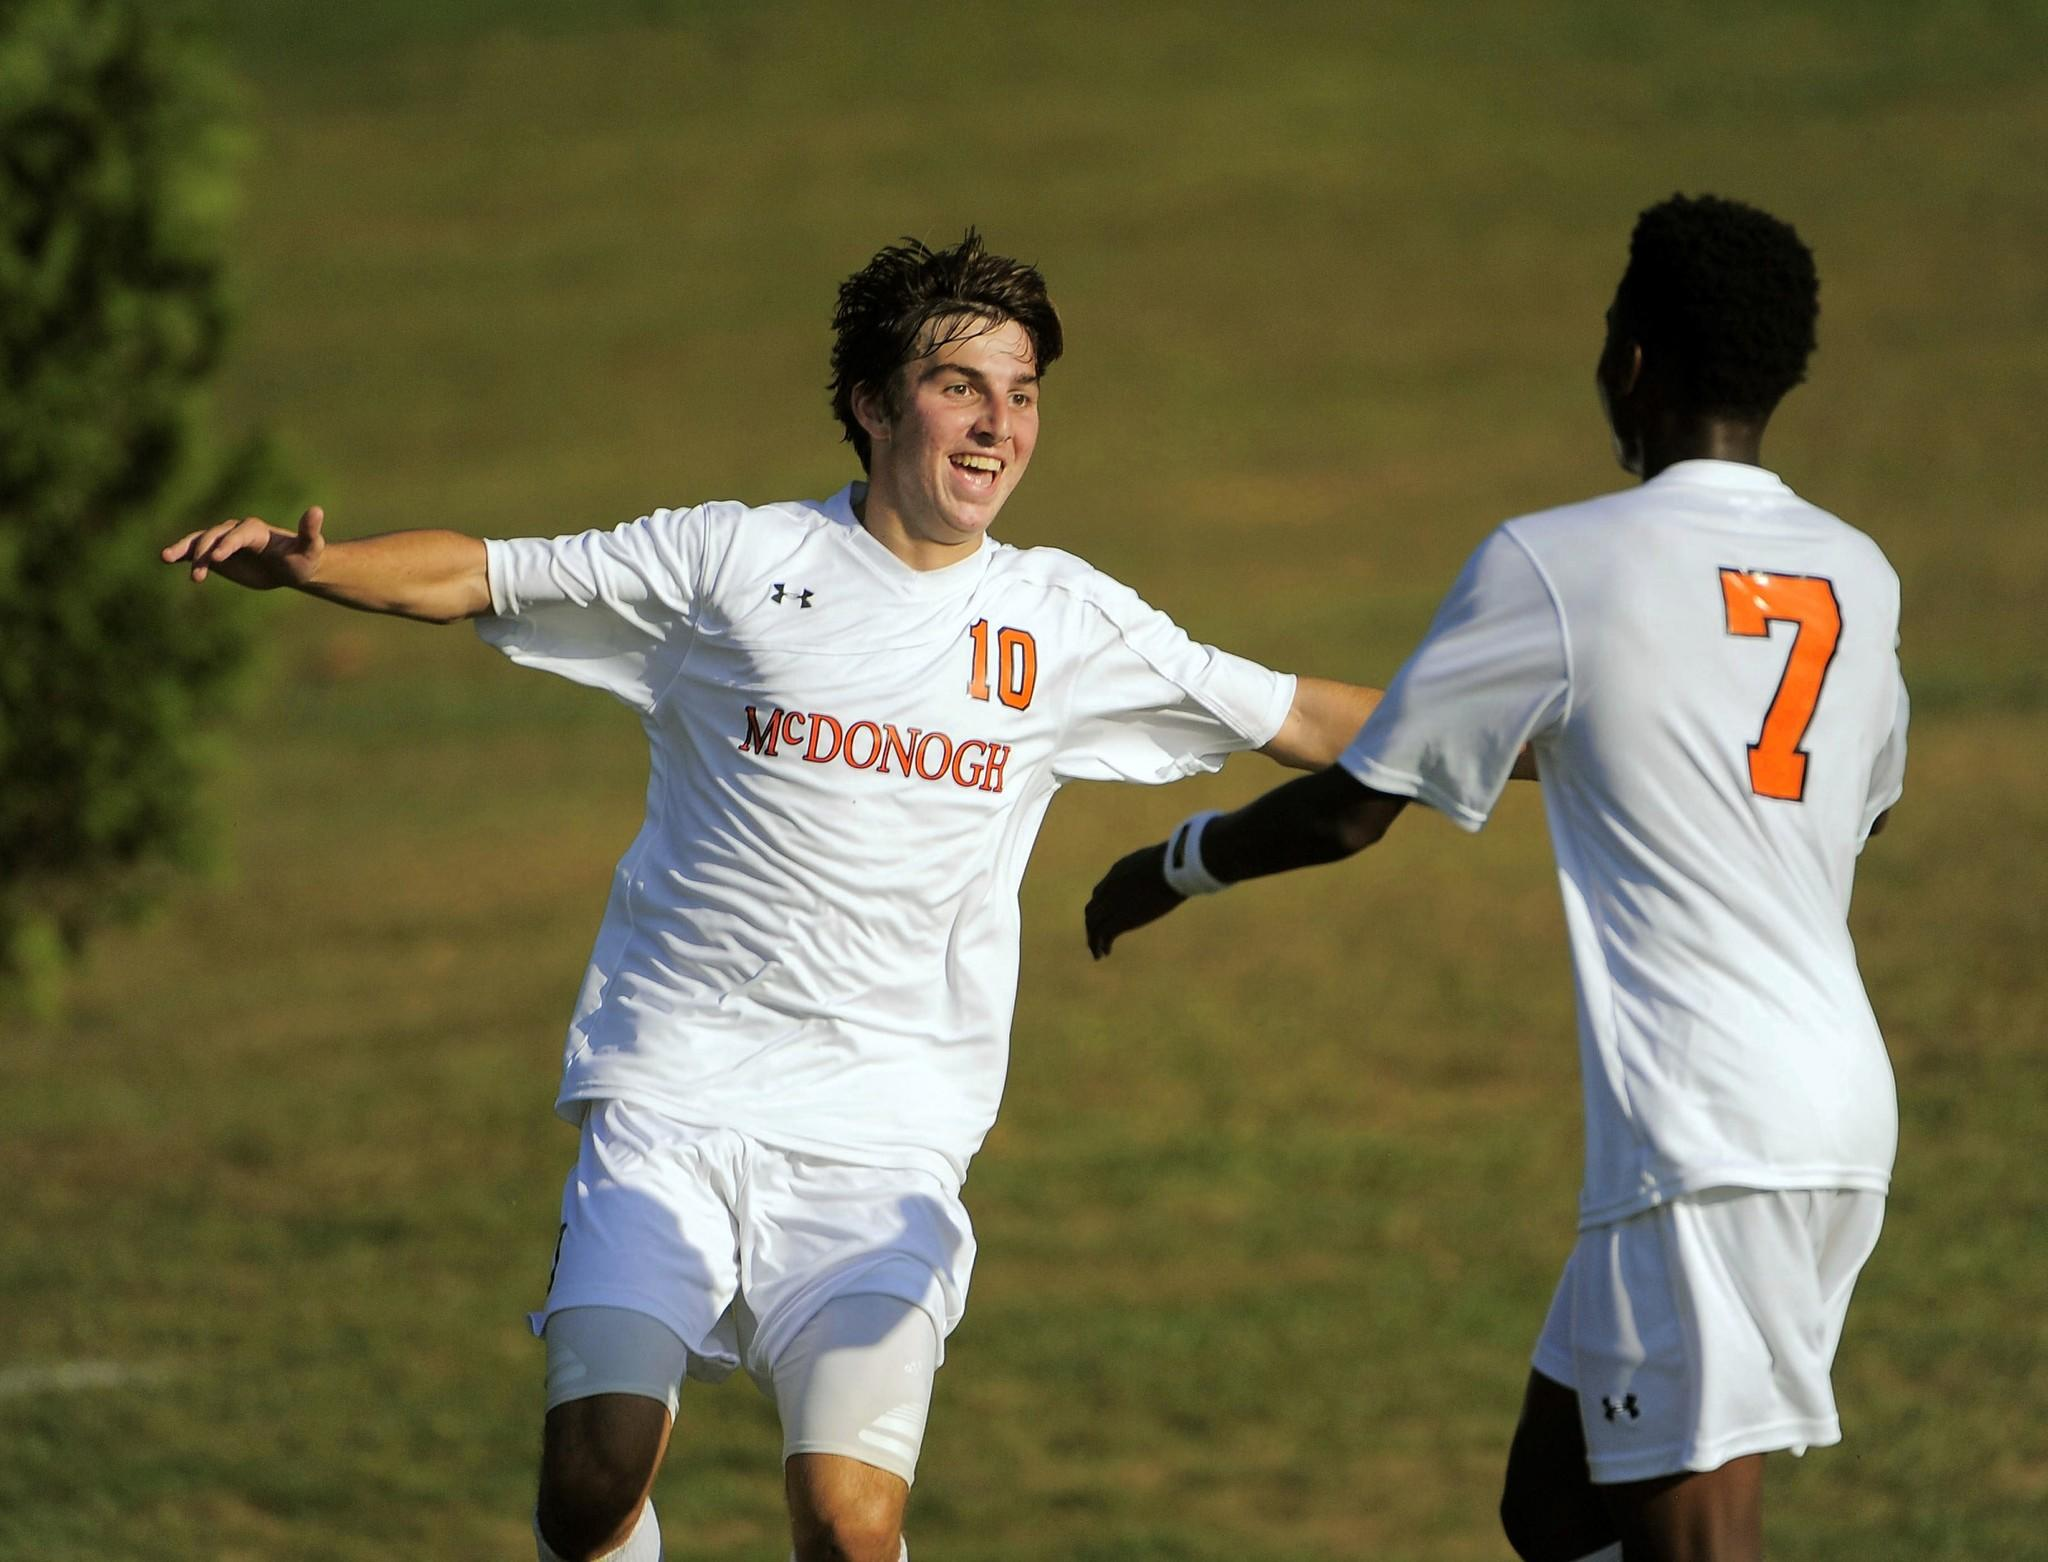 McDonogh's Connor Smith (10) celebrates a goal last season.